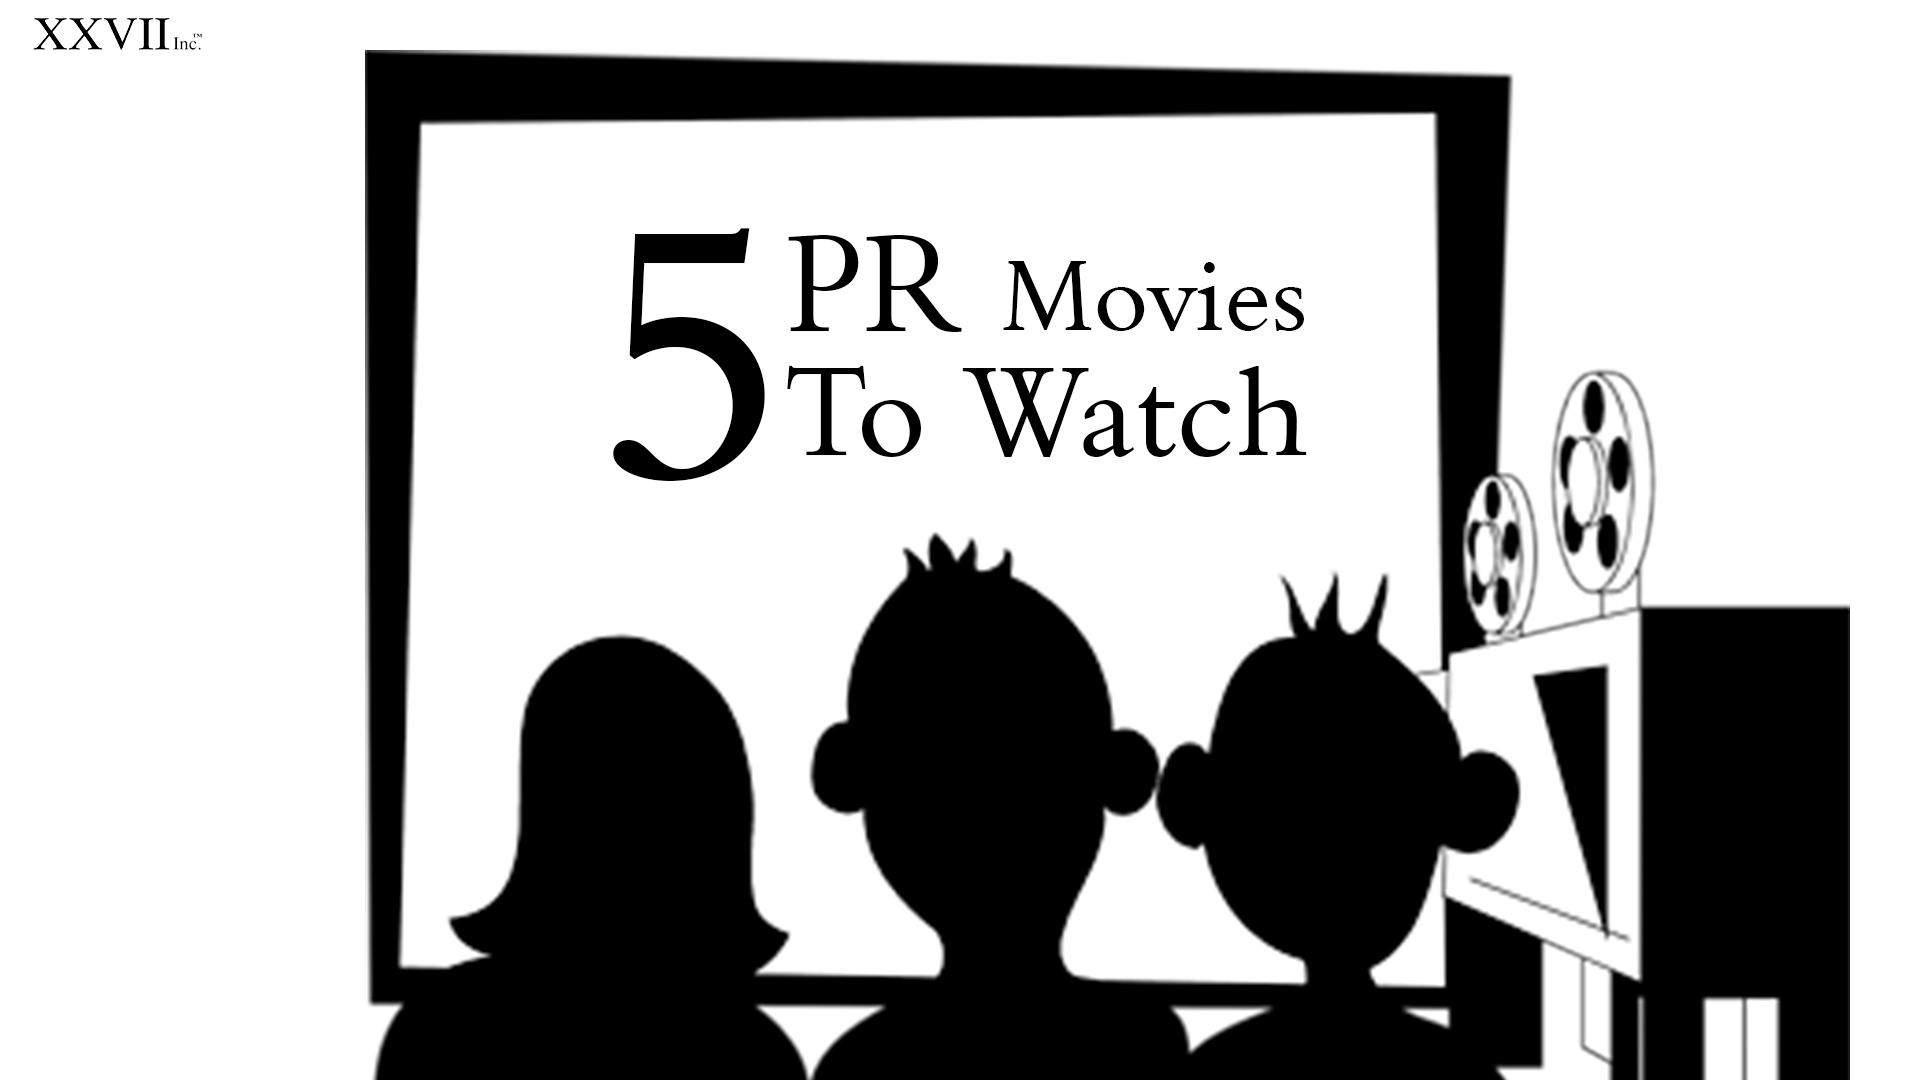 5 must PR Movies to watch for a better understanding of the industry